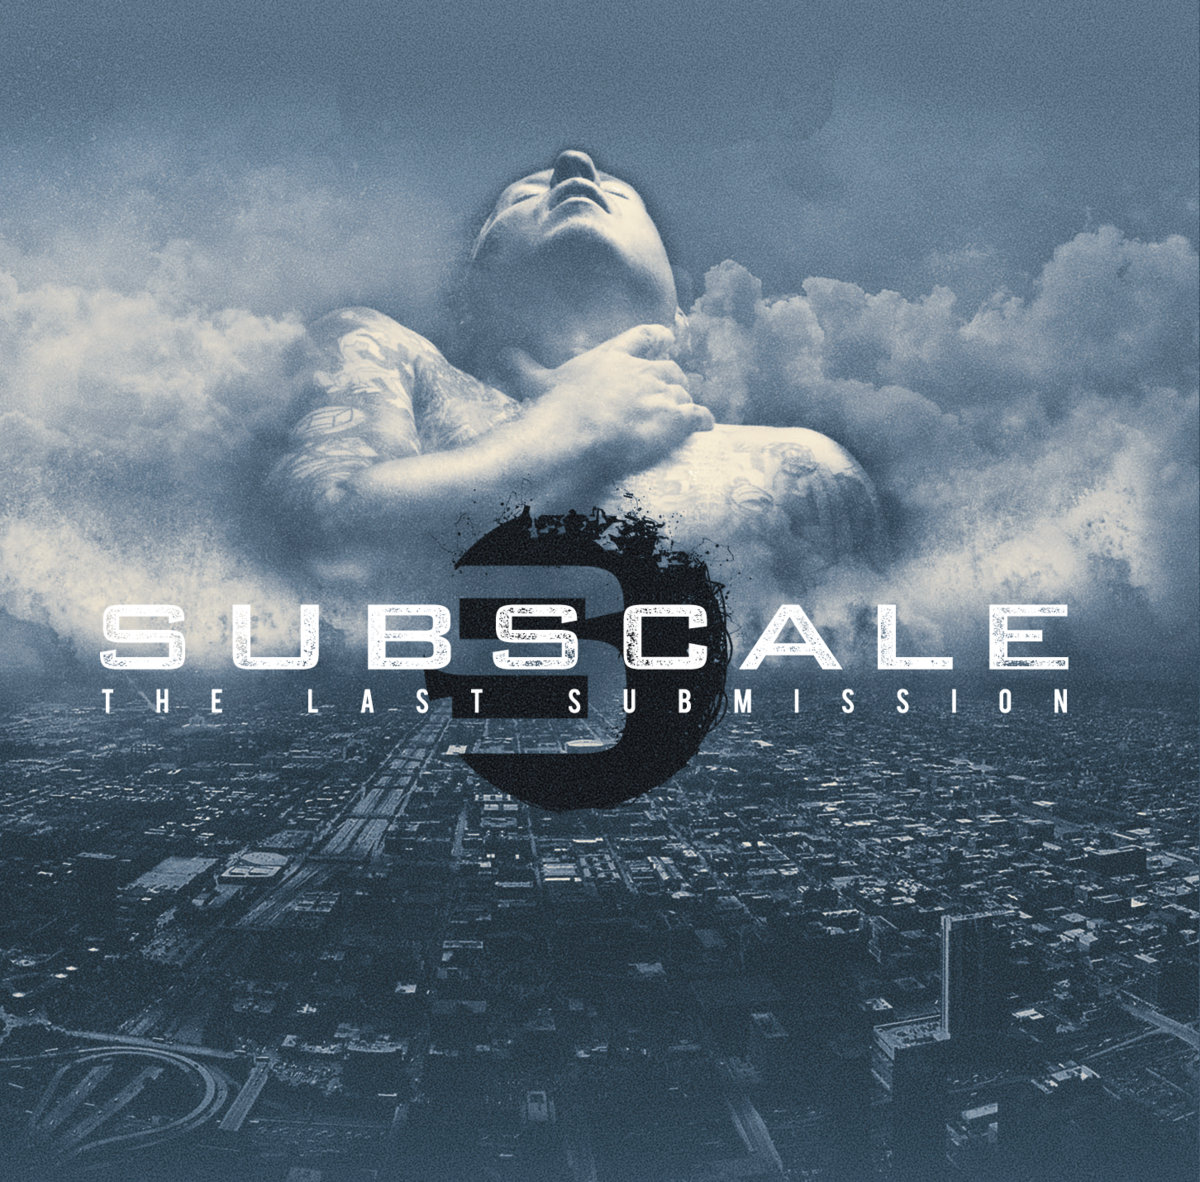 The Last Submission | Subscale